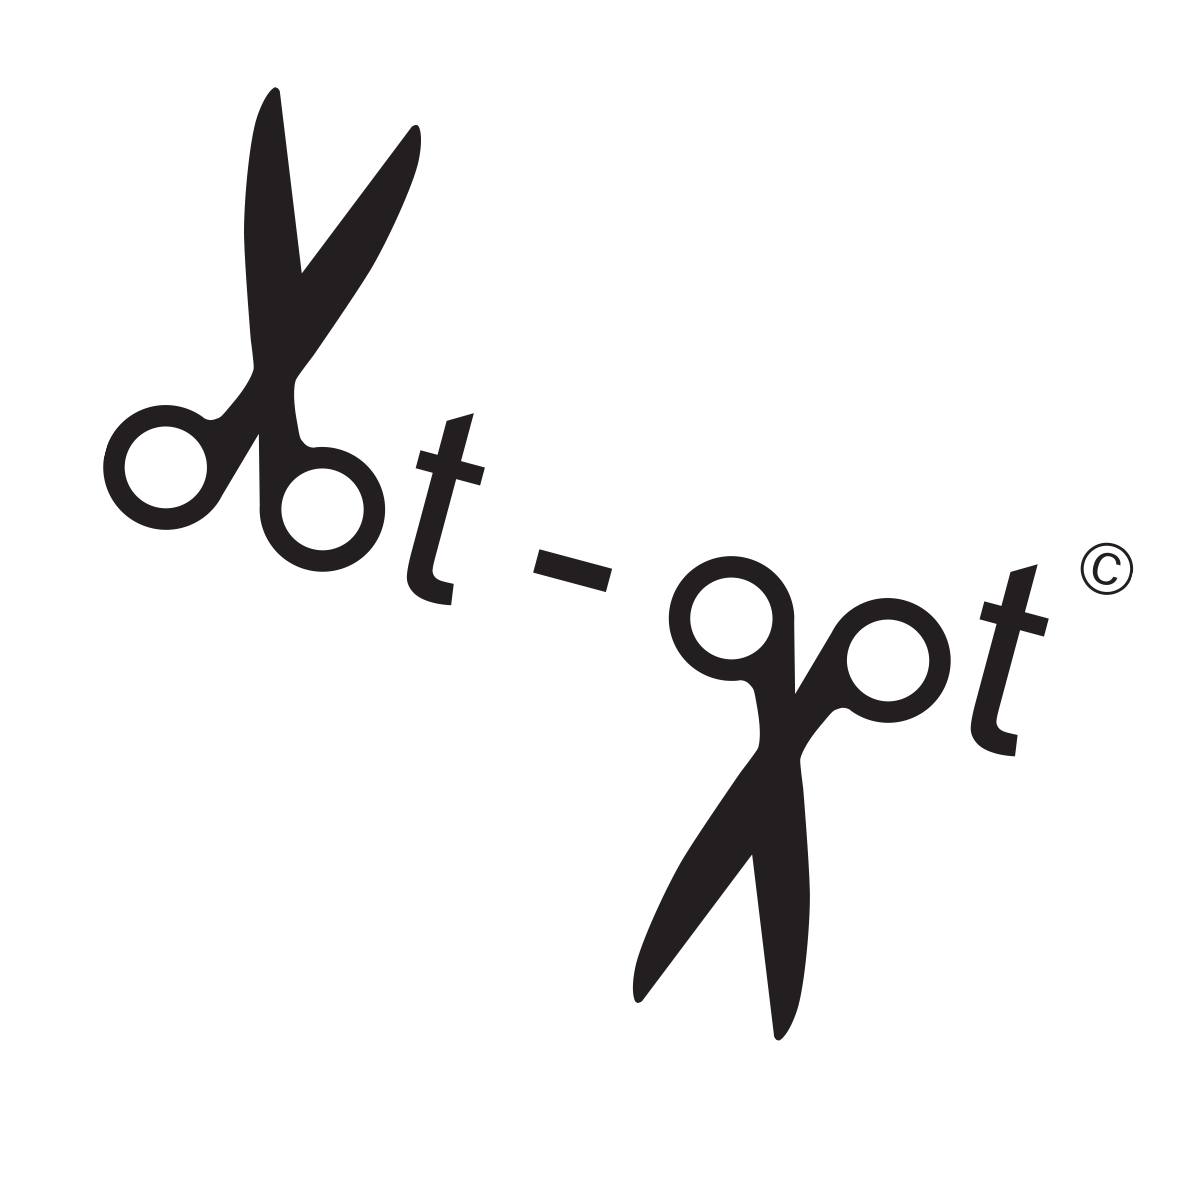 Oot Oot Studio Soft Furniture High Quality Hand Made Sofa Logo Front